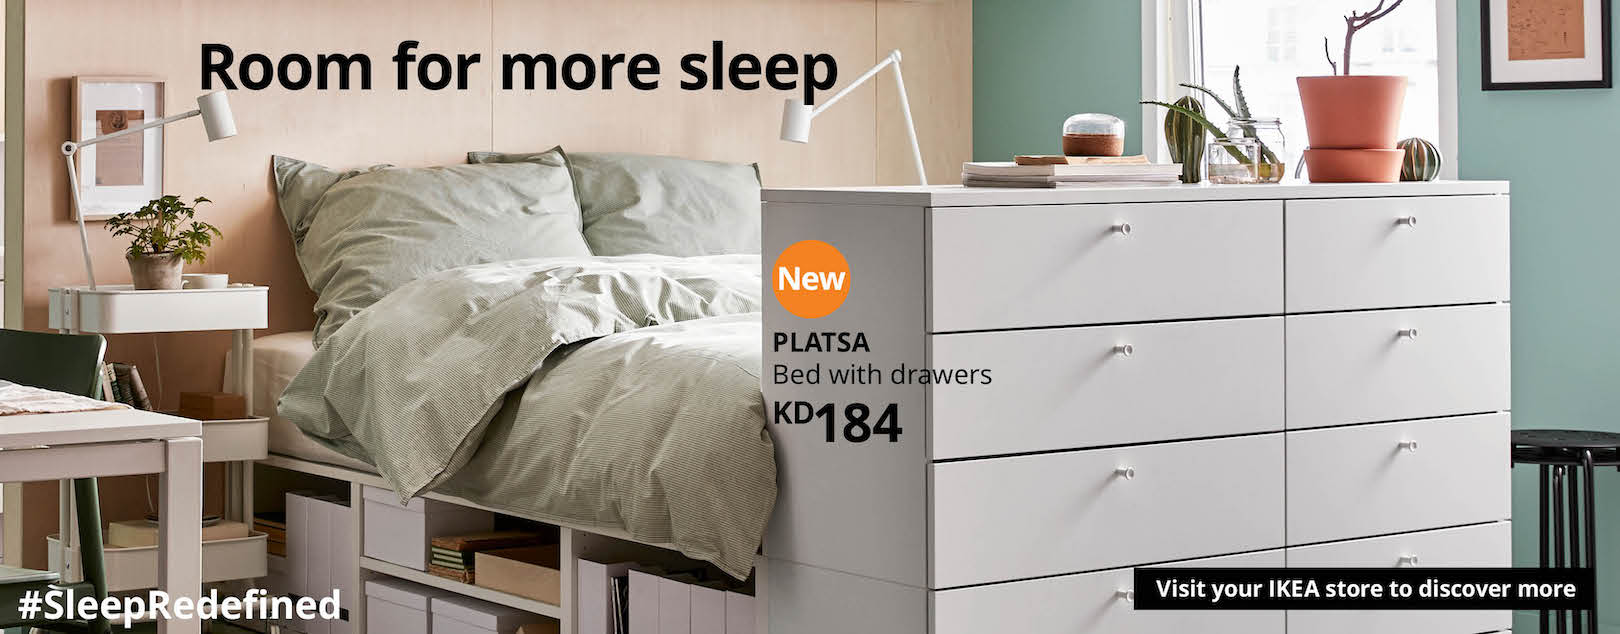 Platsa system make room for more sleep